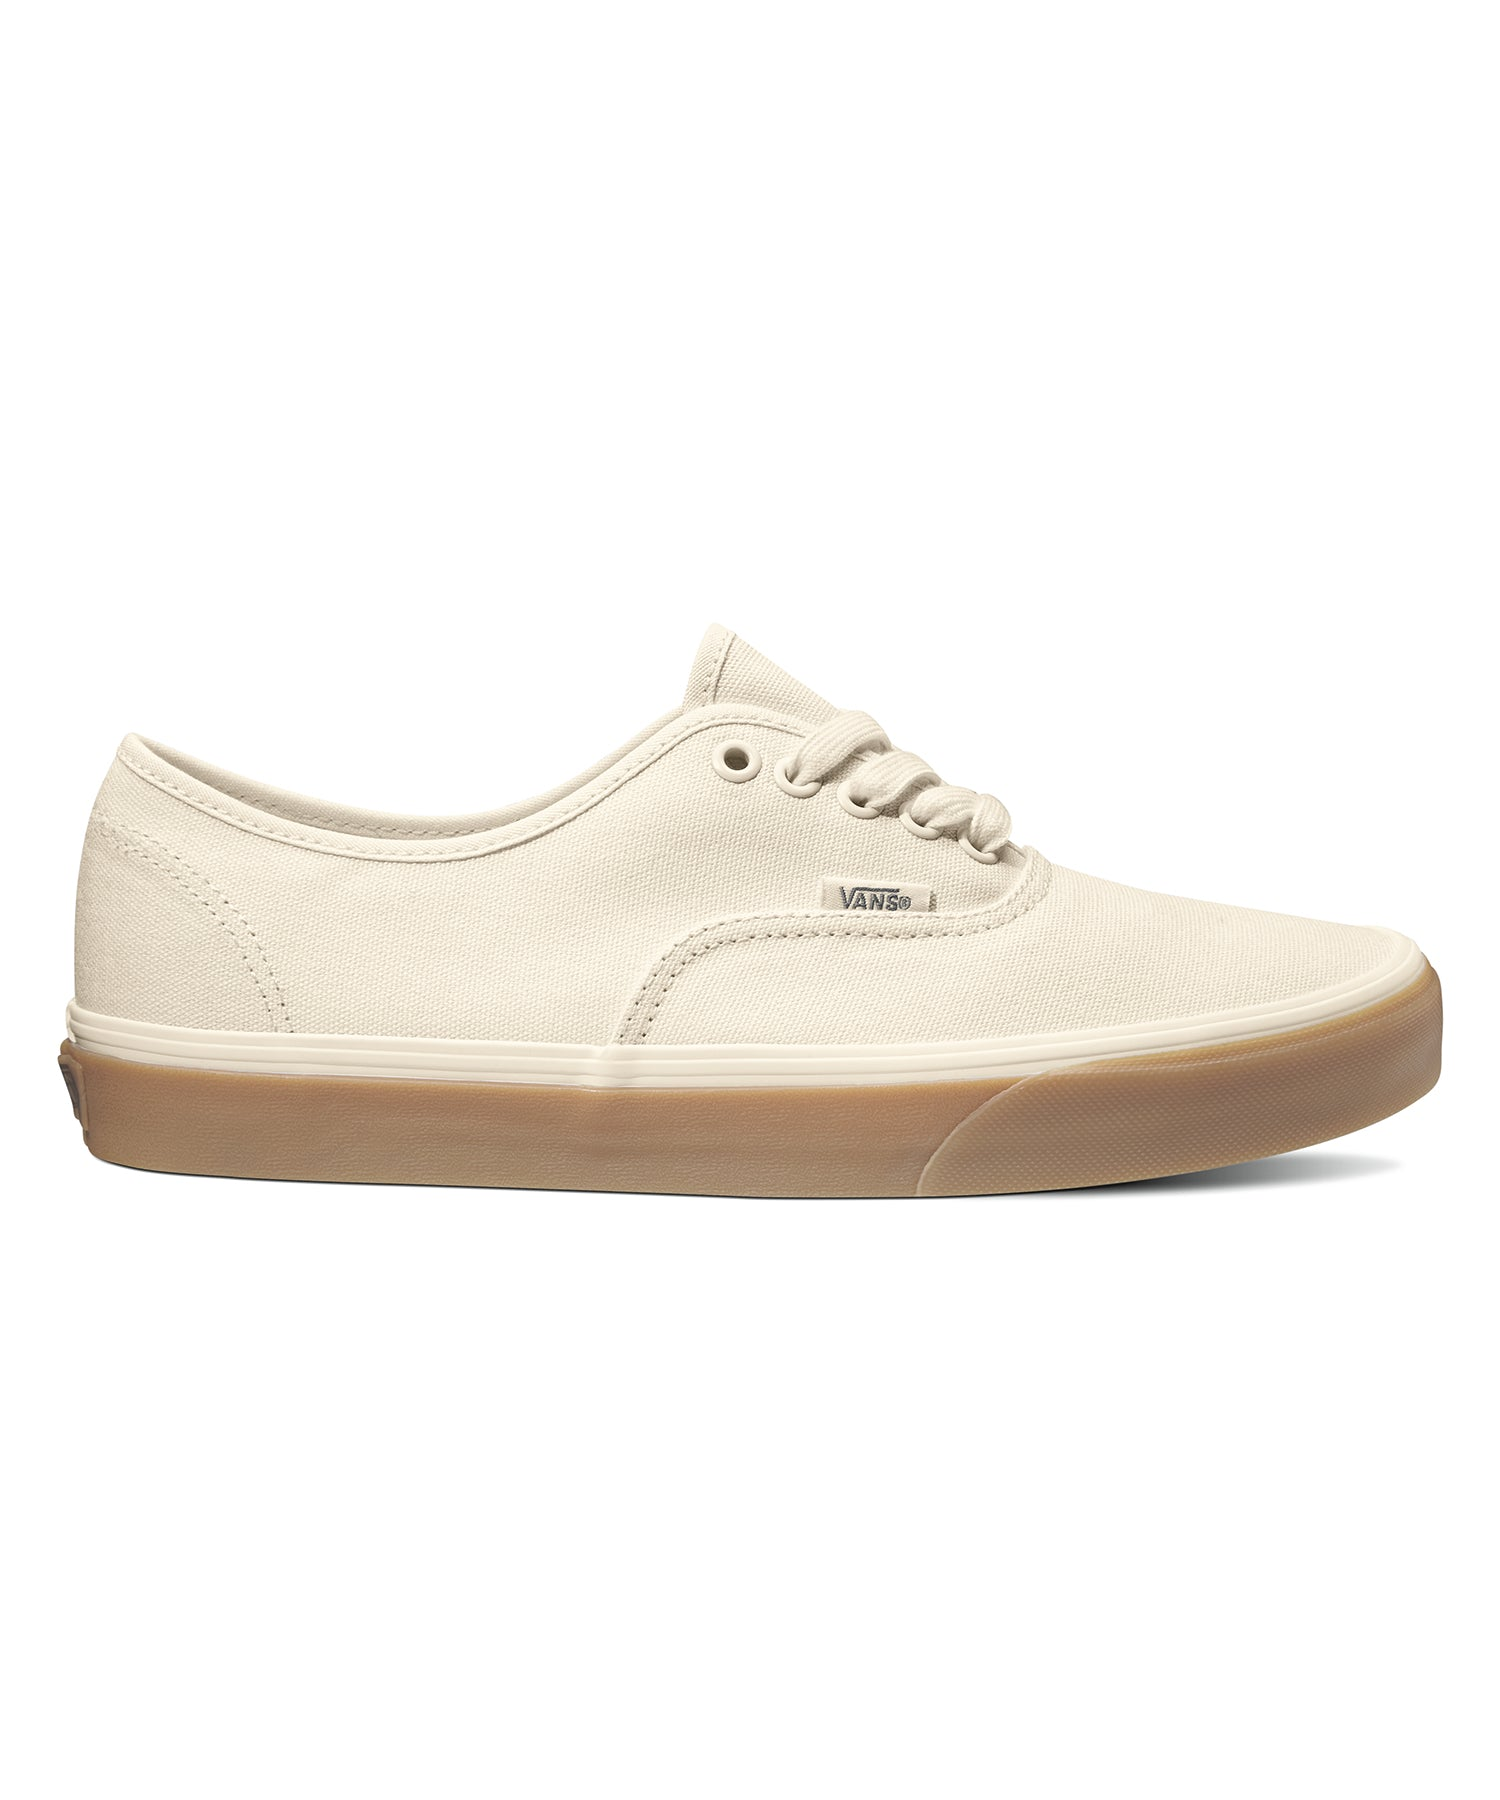 Vans 12oz Canvas Authentic in Marshmallow